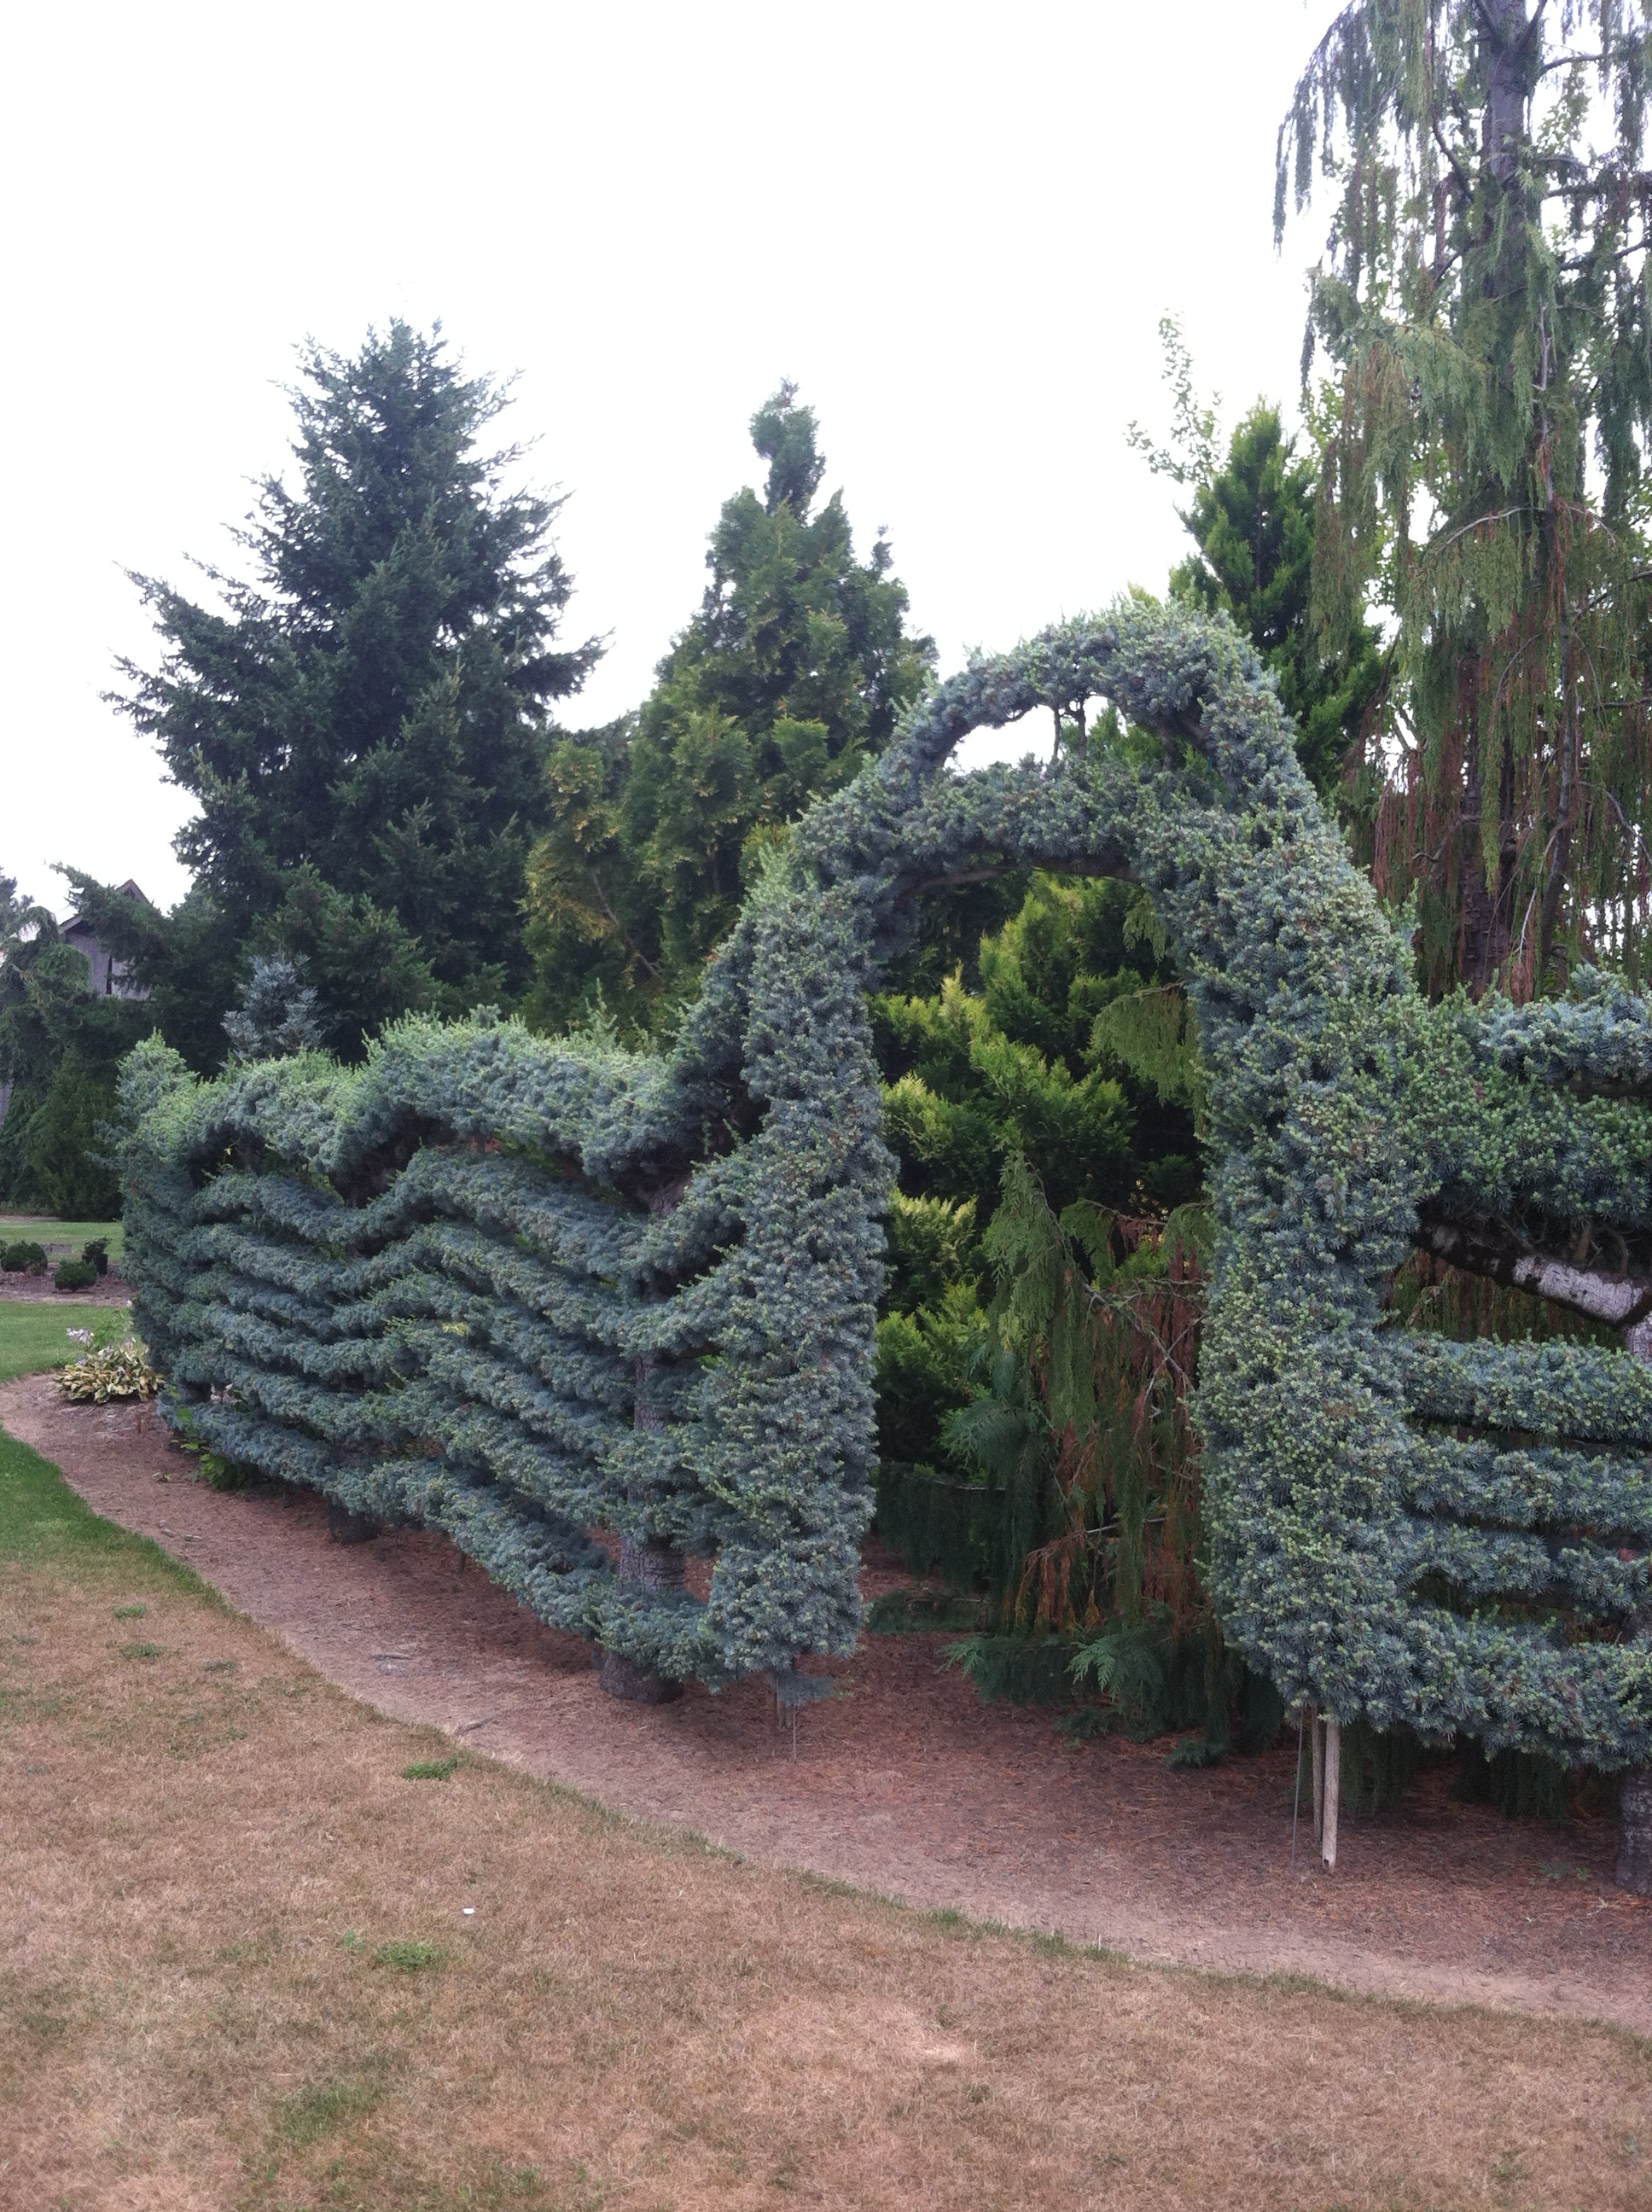 Cool Conifer Garden Pictures You Have To See These Cinthia Milner